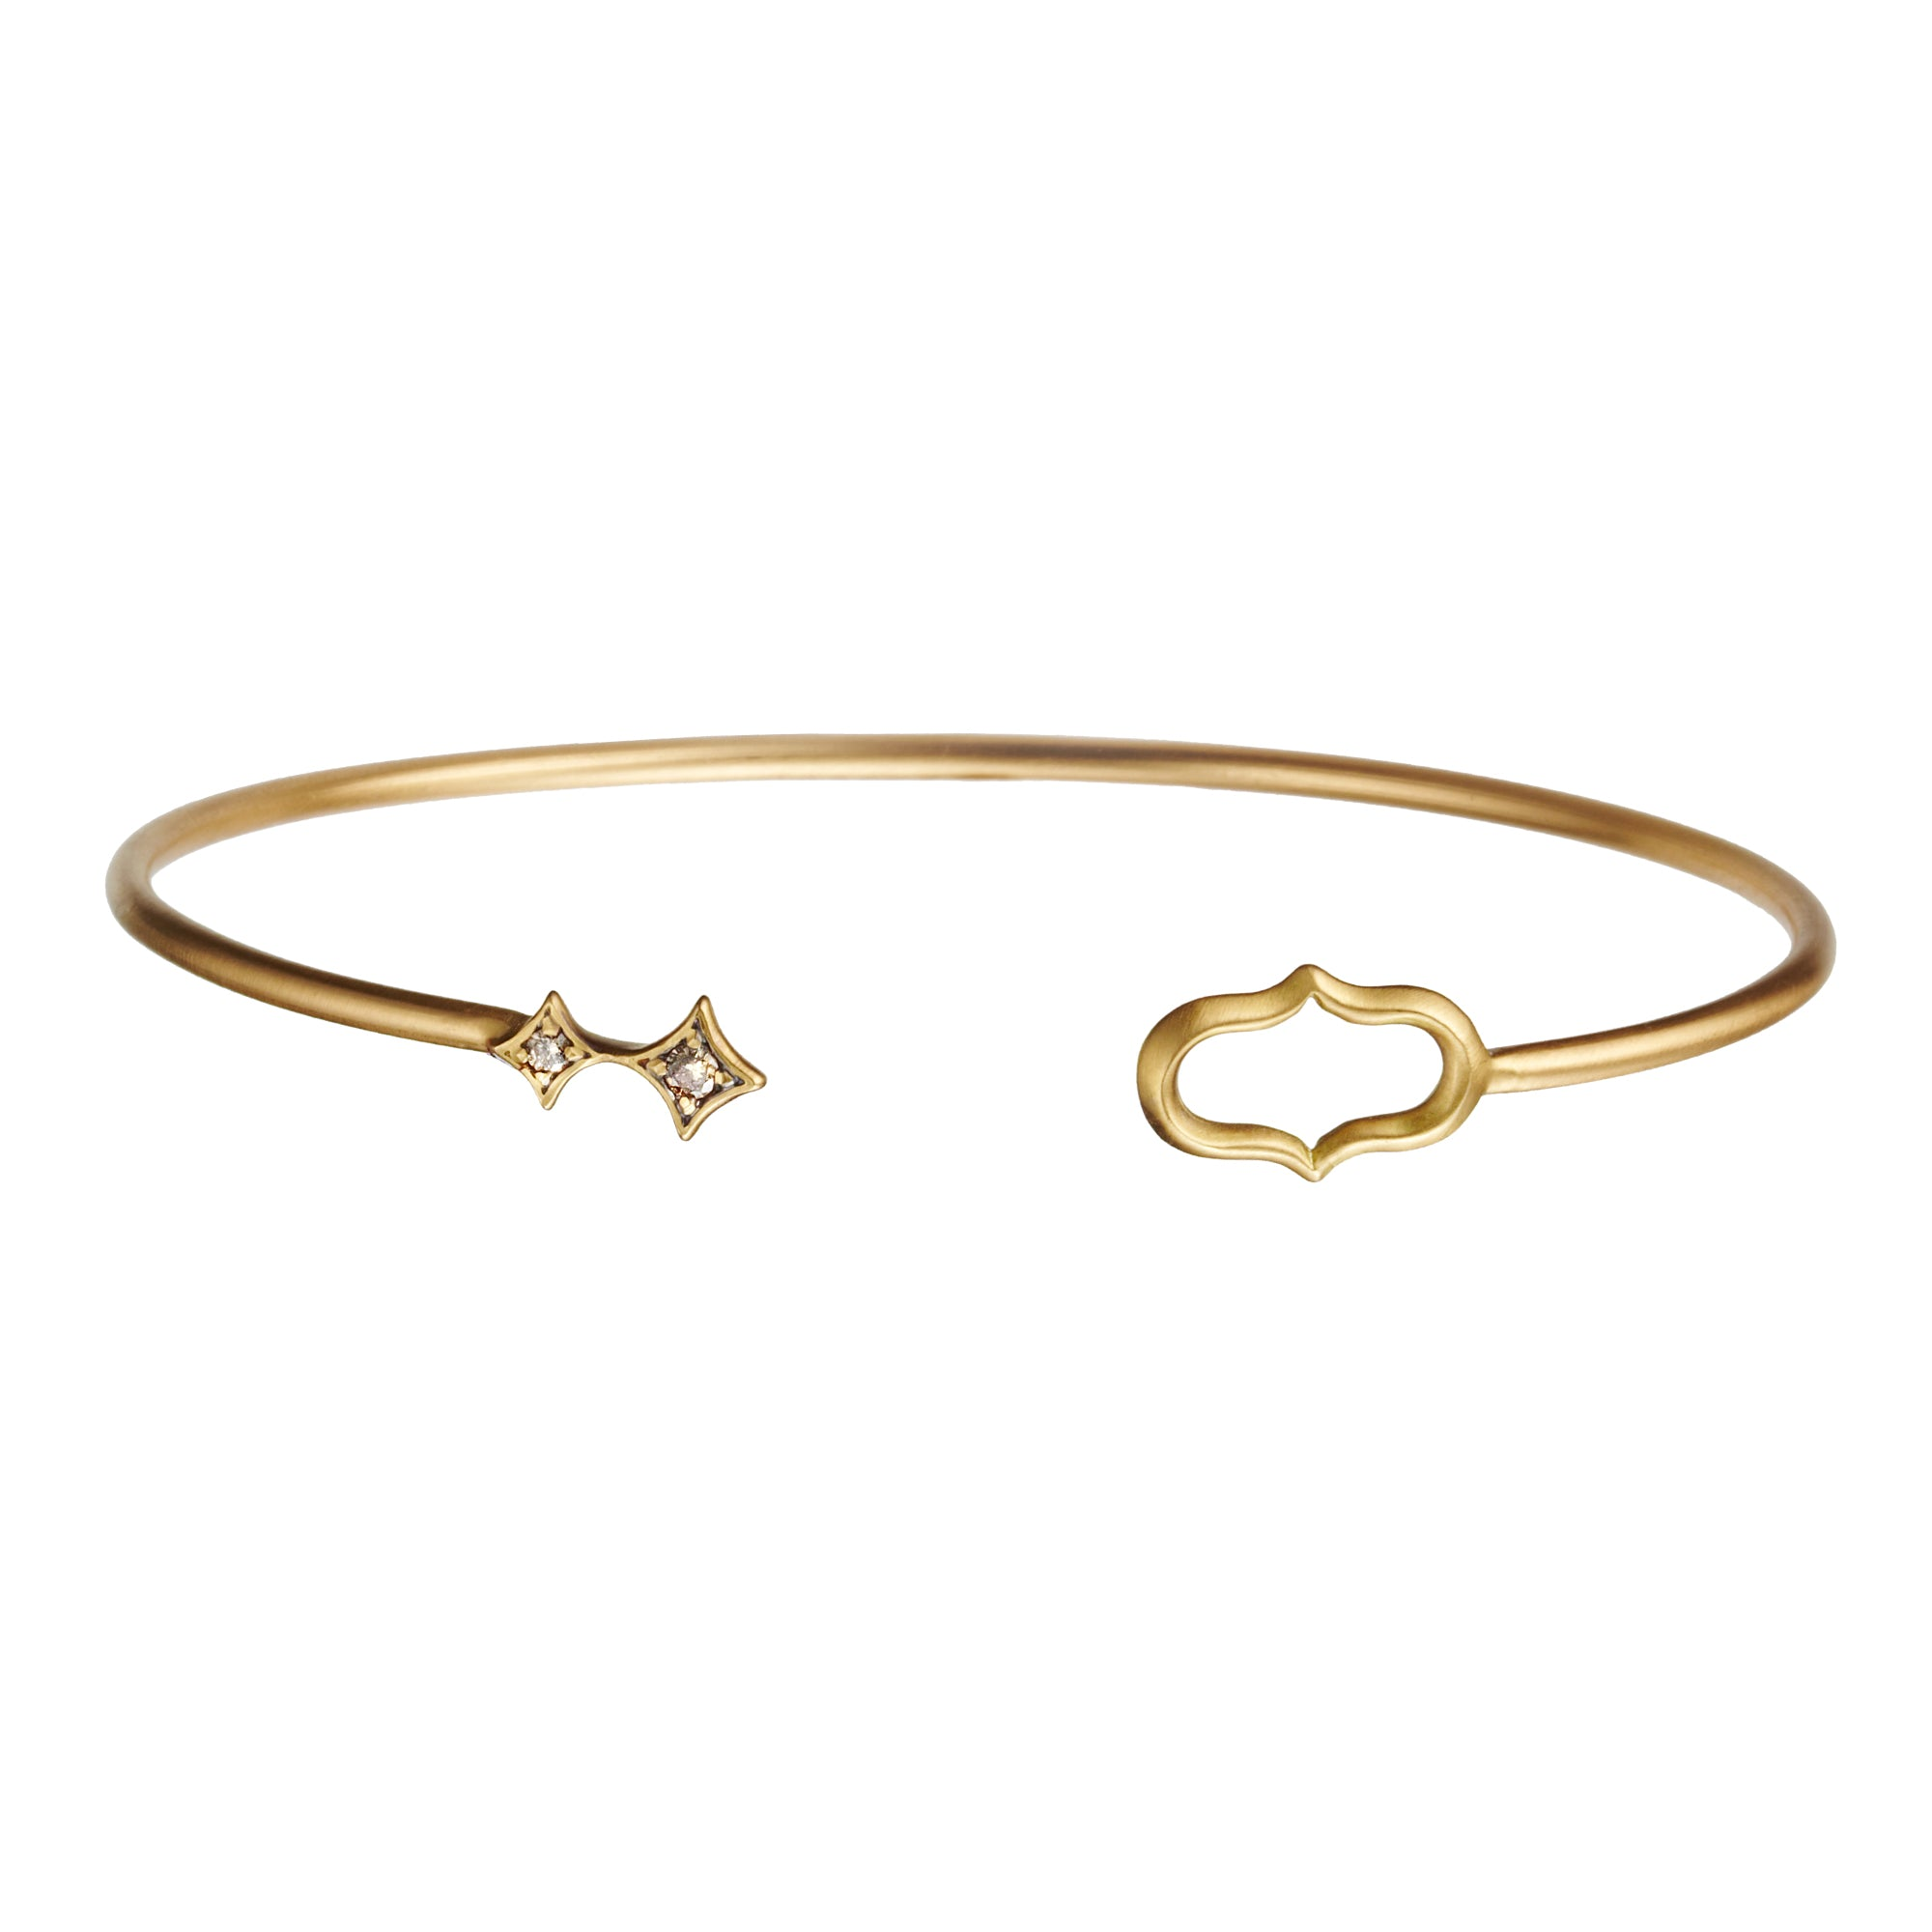 Gold Cognac Diamond Star and Jaws Motif Cuff by Anahita for Broken English Jewelry